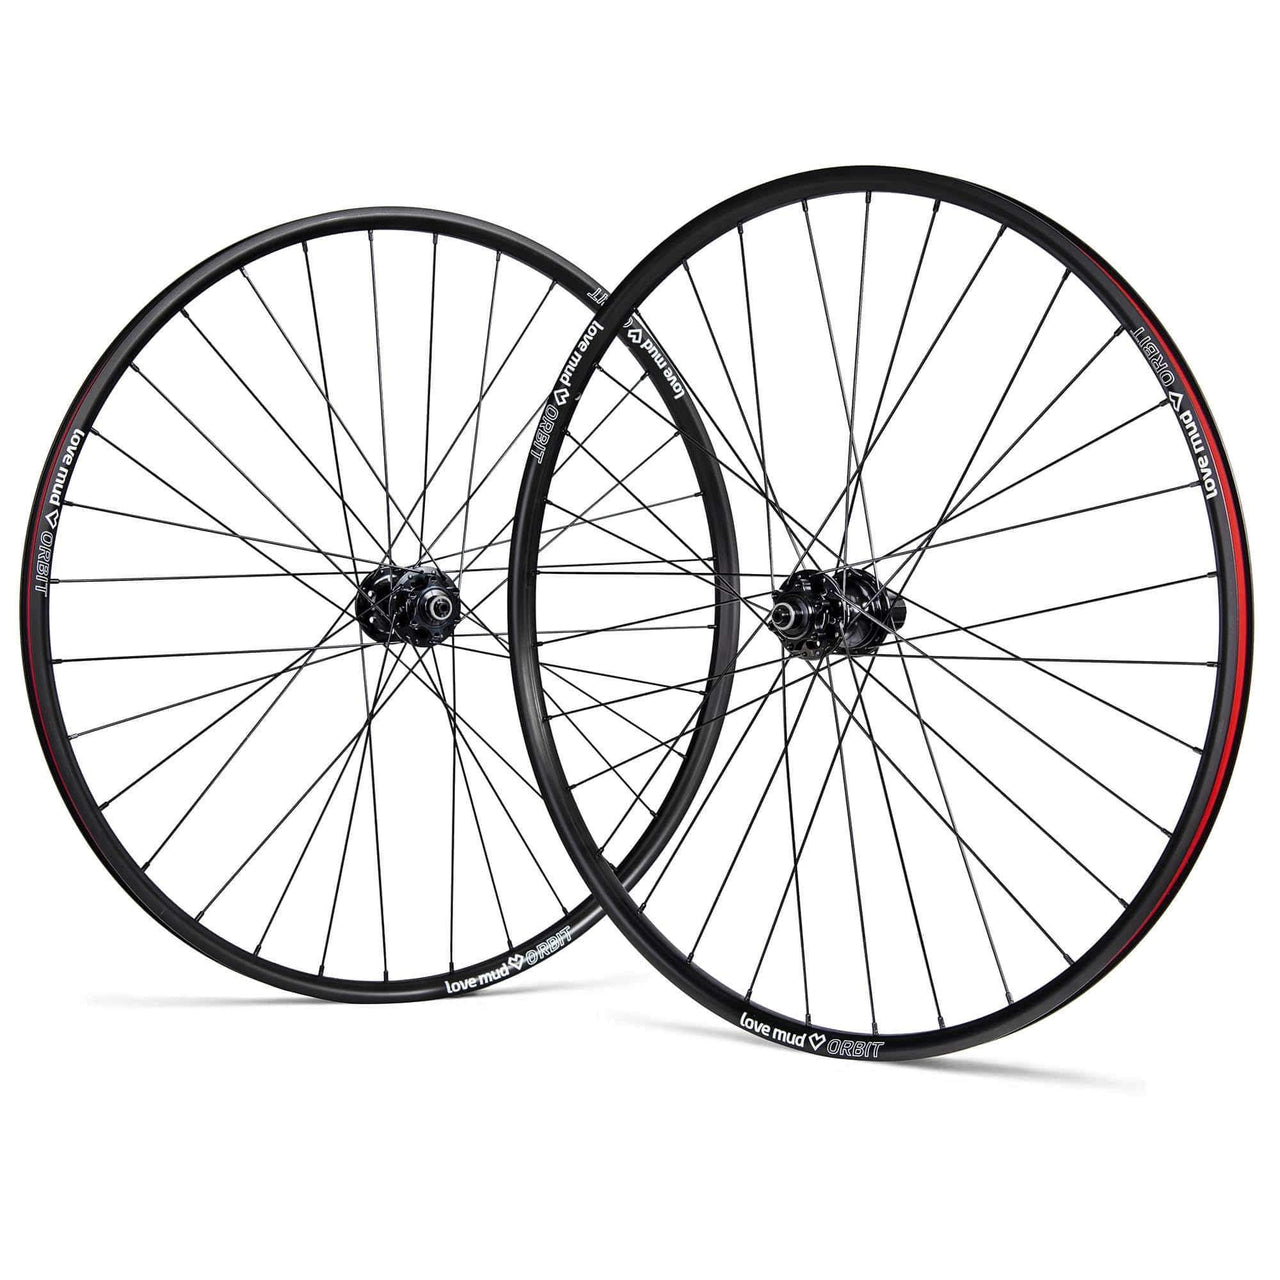 Love Mud Orbit 700c Wheelset [OEM]